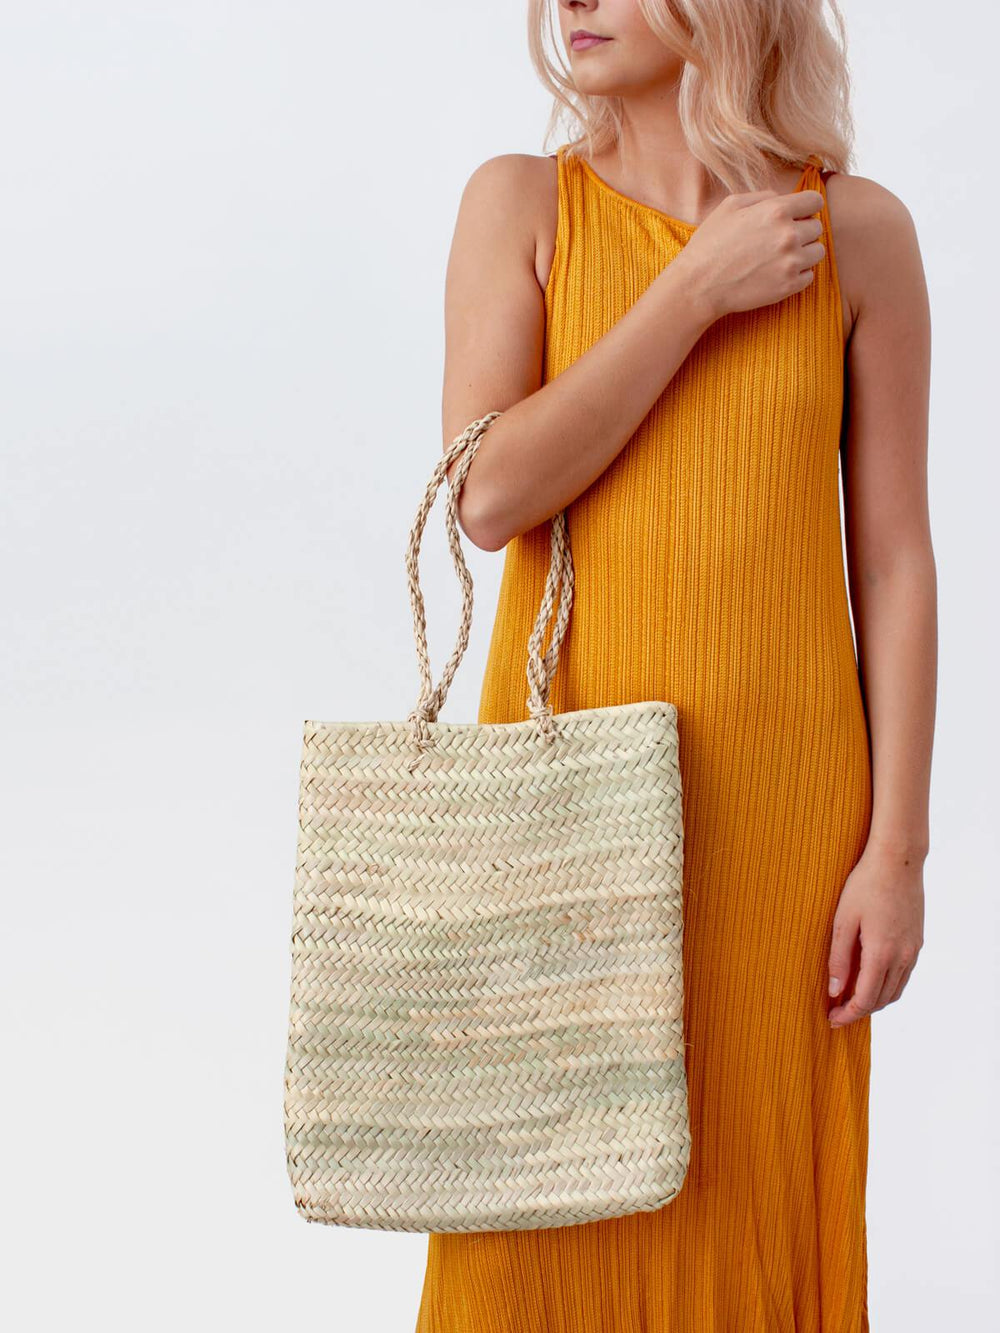 The Delphi Tote Basket is handwoven by artisans in Moroccan using palm leaf. Tall and rectangular in shape, the long sisal handles make it a practical and contemporary basket bag for carrying daily essentials.